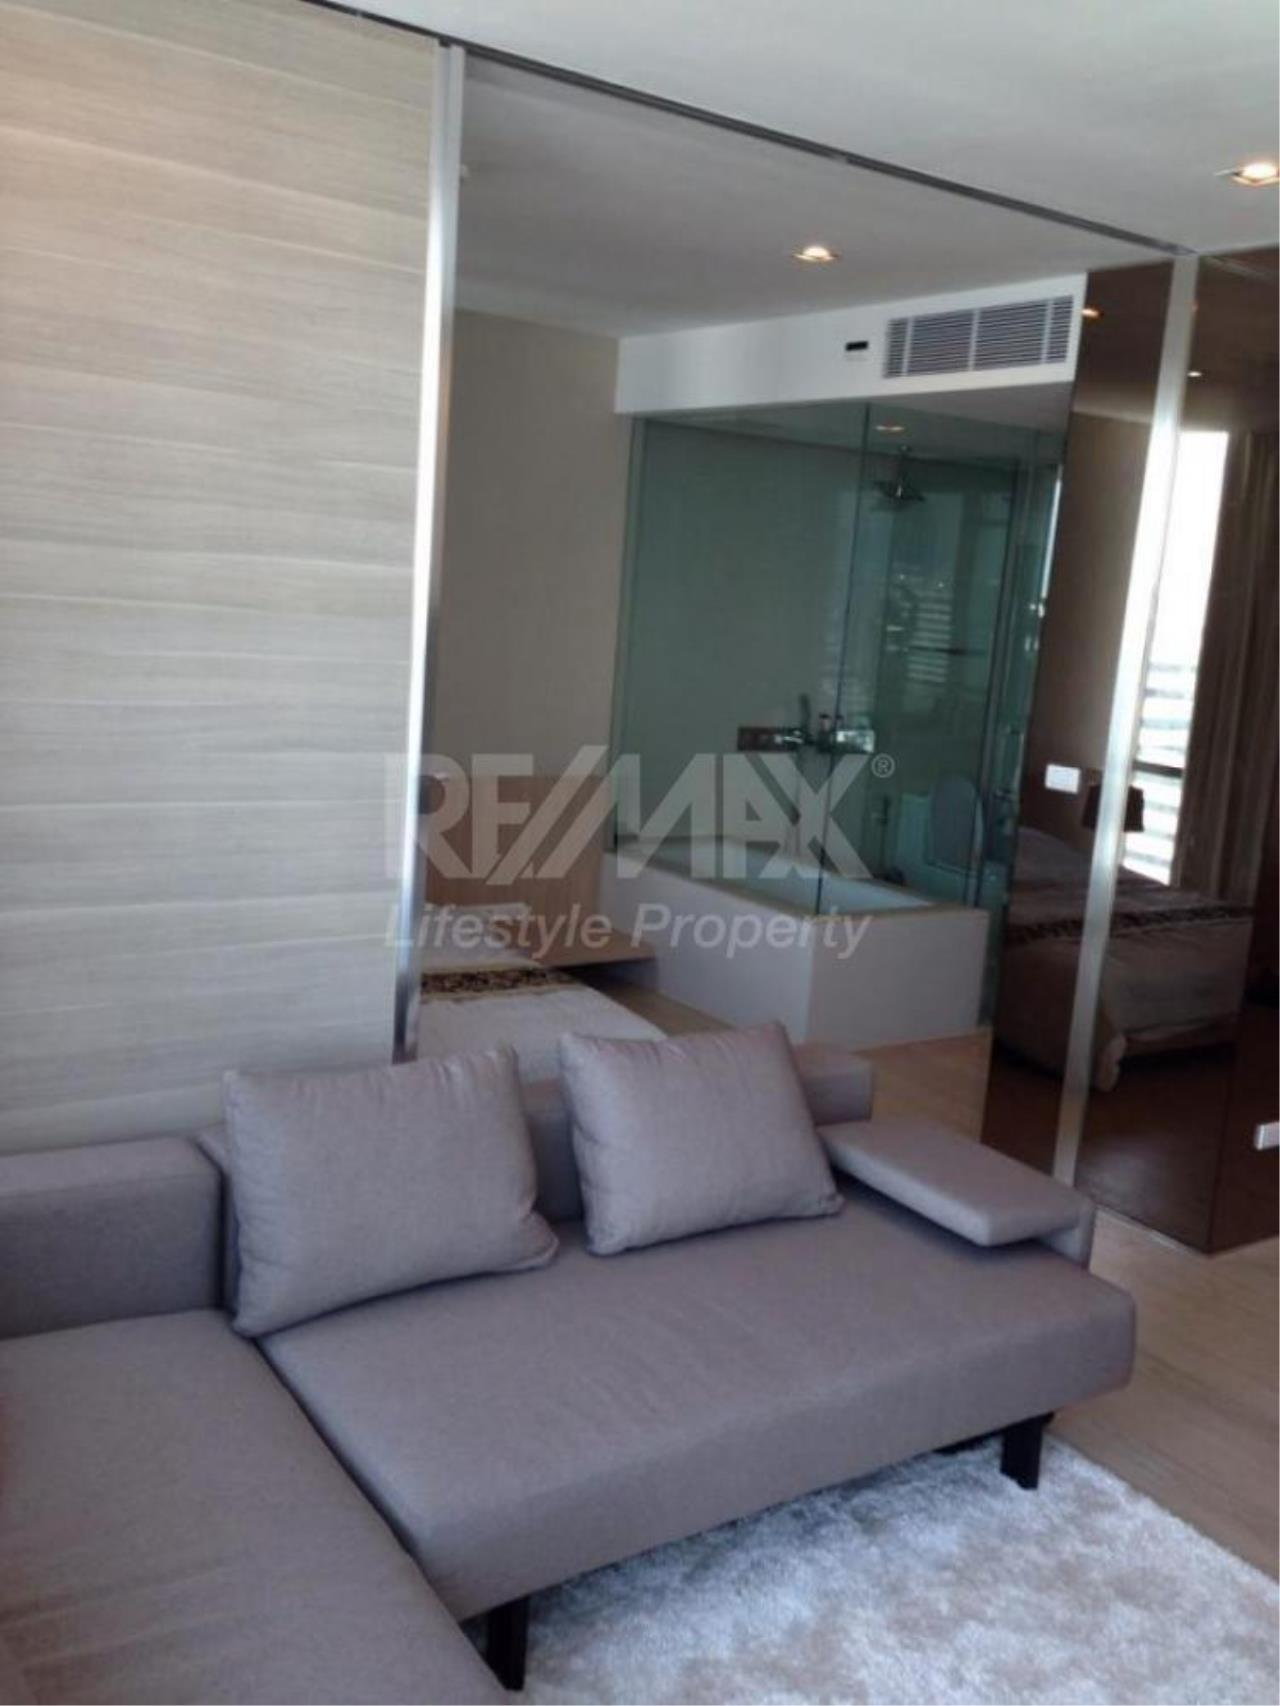 RE/MAX LifeStyle Property Agency's The Room Sukhumvit 21 5